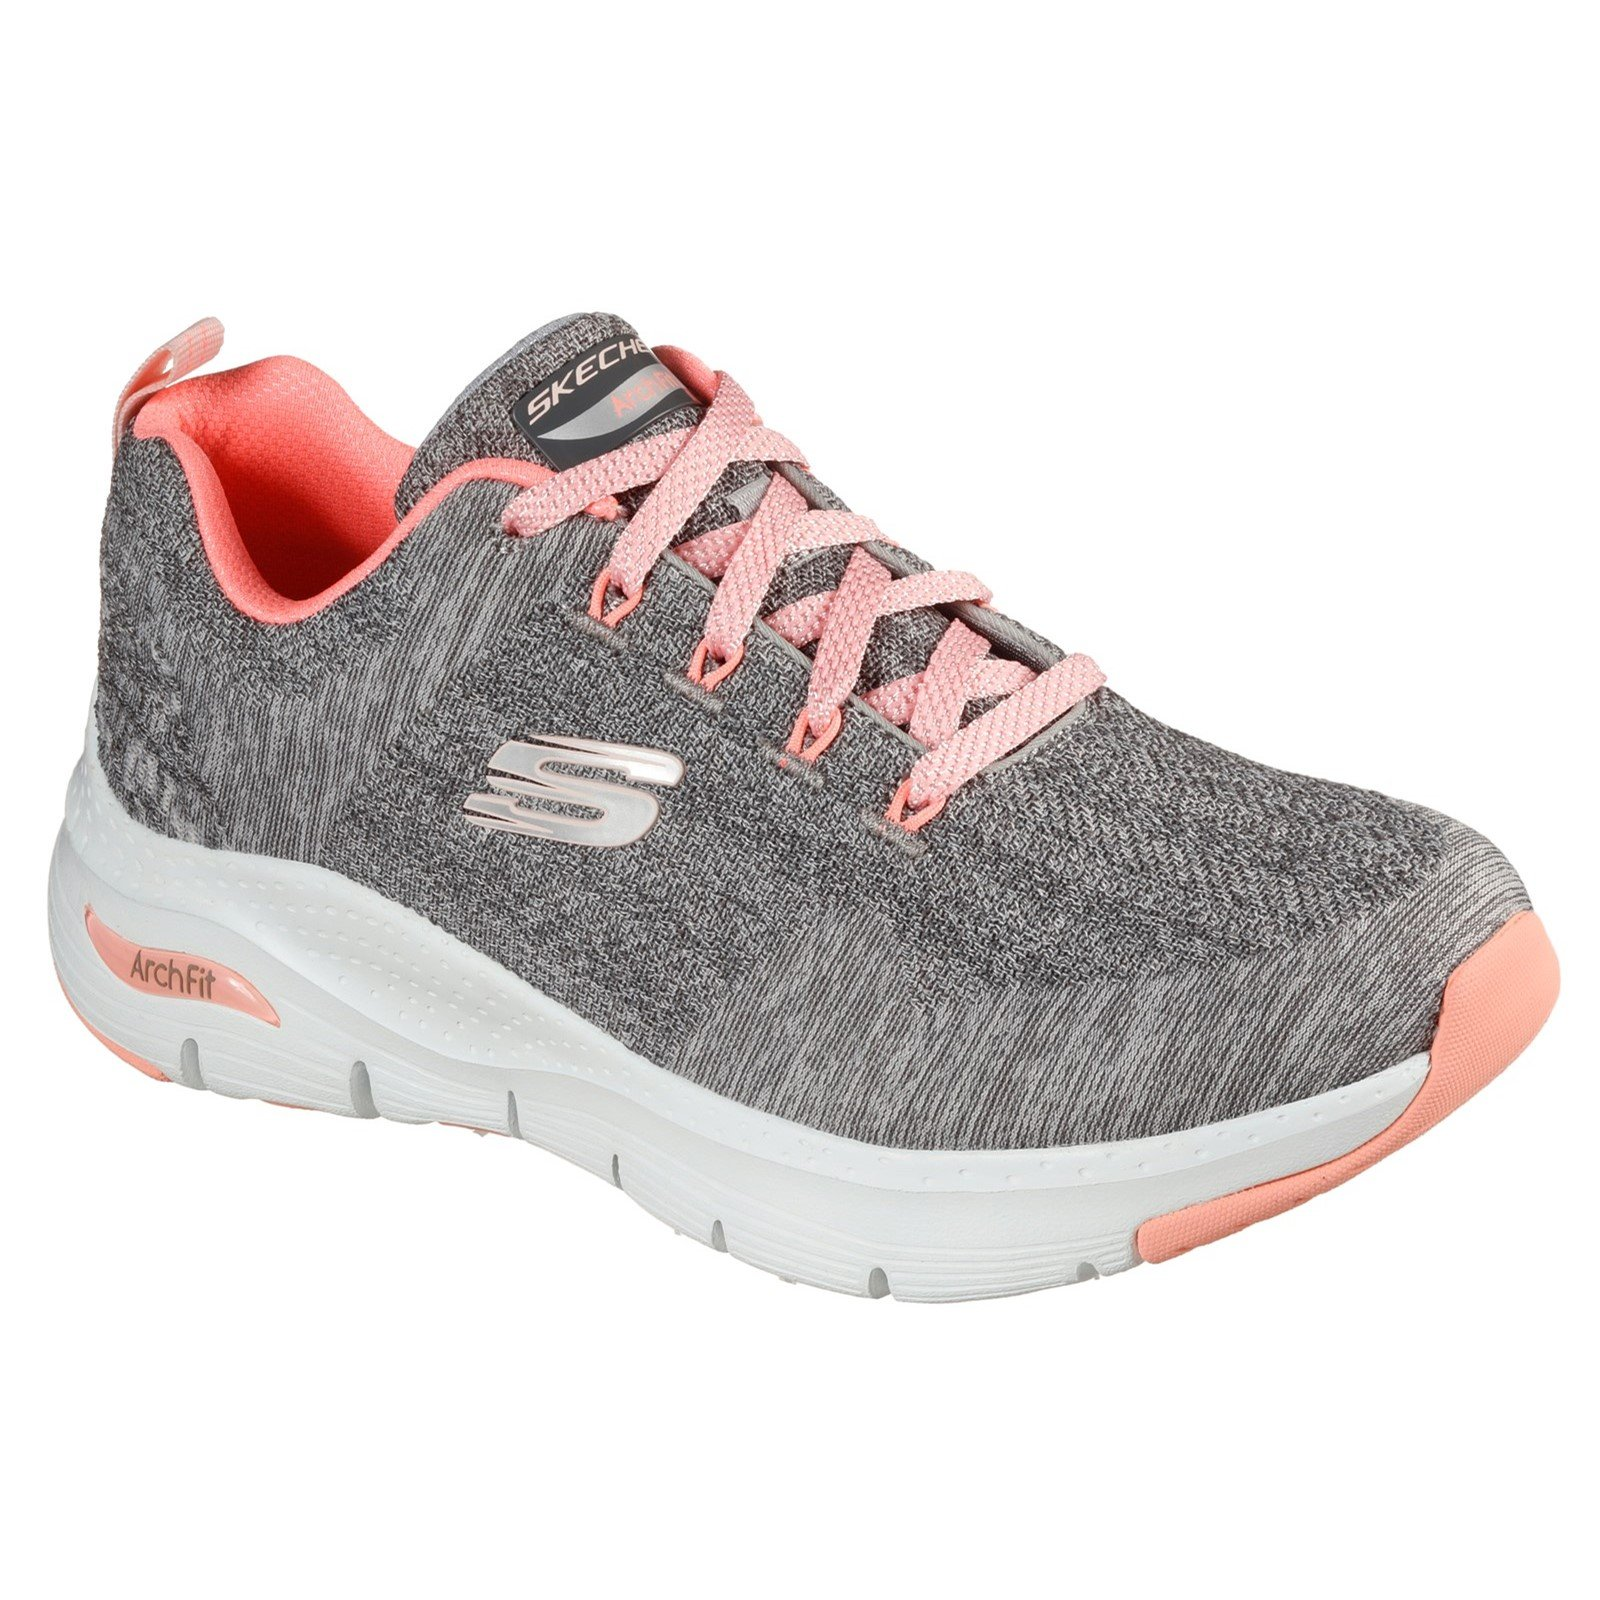 Skechers Women's Arch Fit Comfy Wave Wide Trainer Multicolor 33065 - Grey/Pink 8